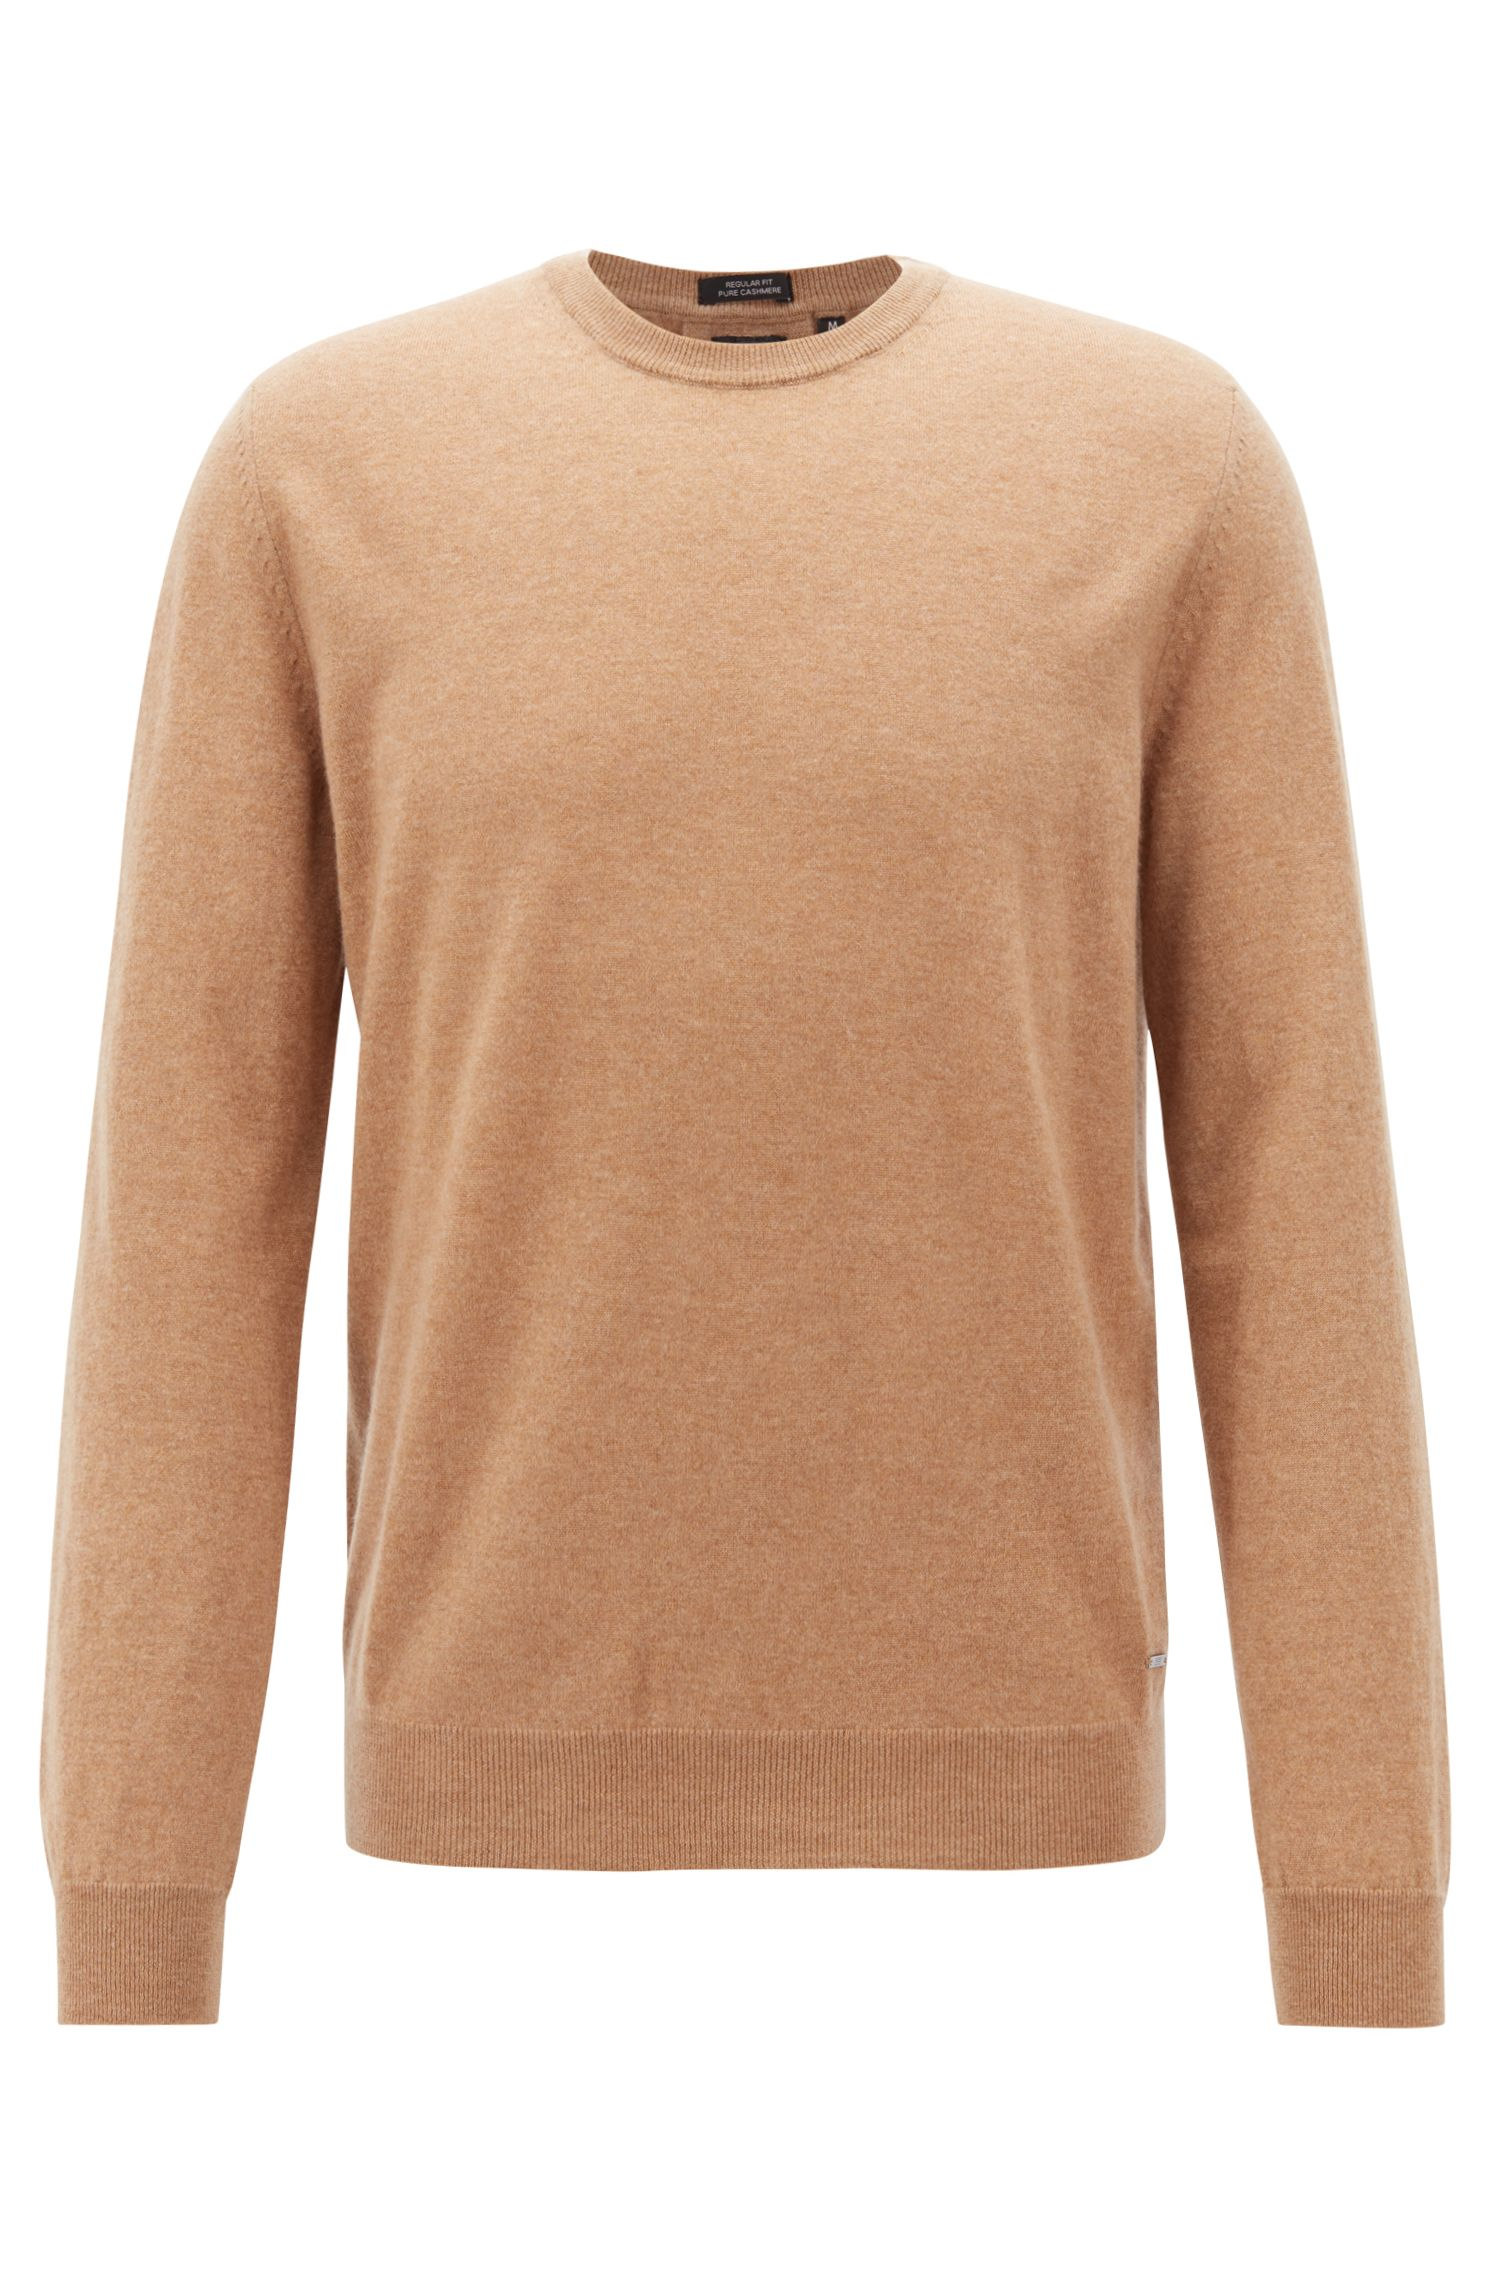 Lightweight sweater in Italian cashmere, Beige